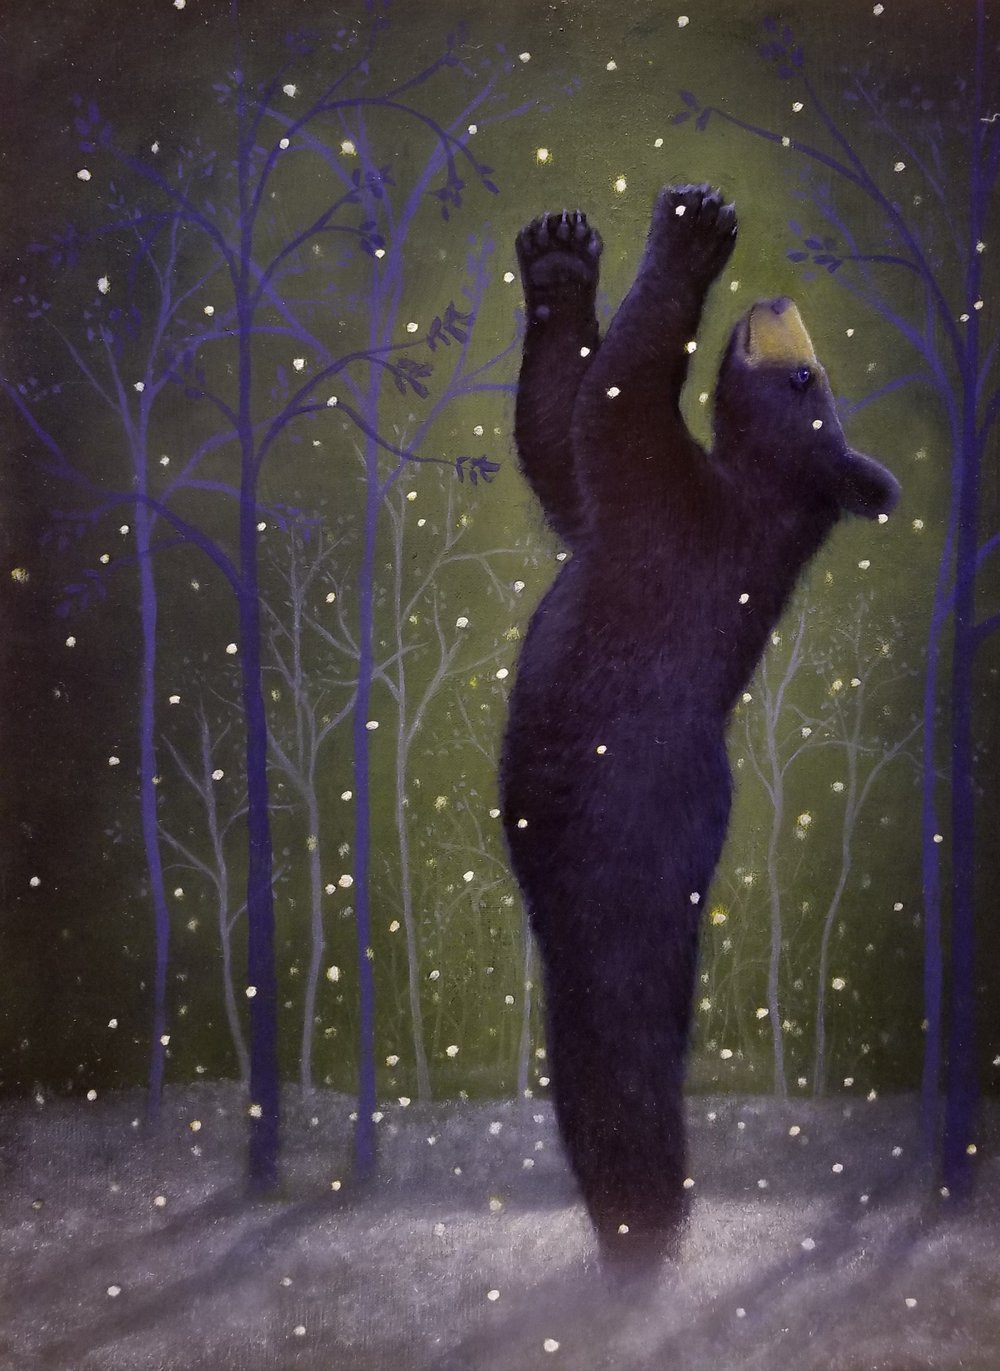 Night Magic, Nancy Oppenheimer. Featured in Southwest Art Magazine